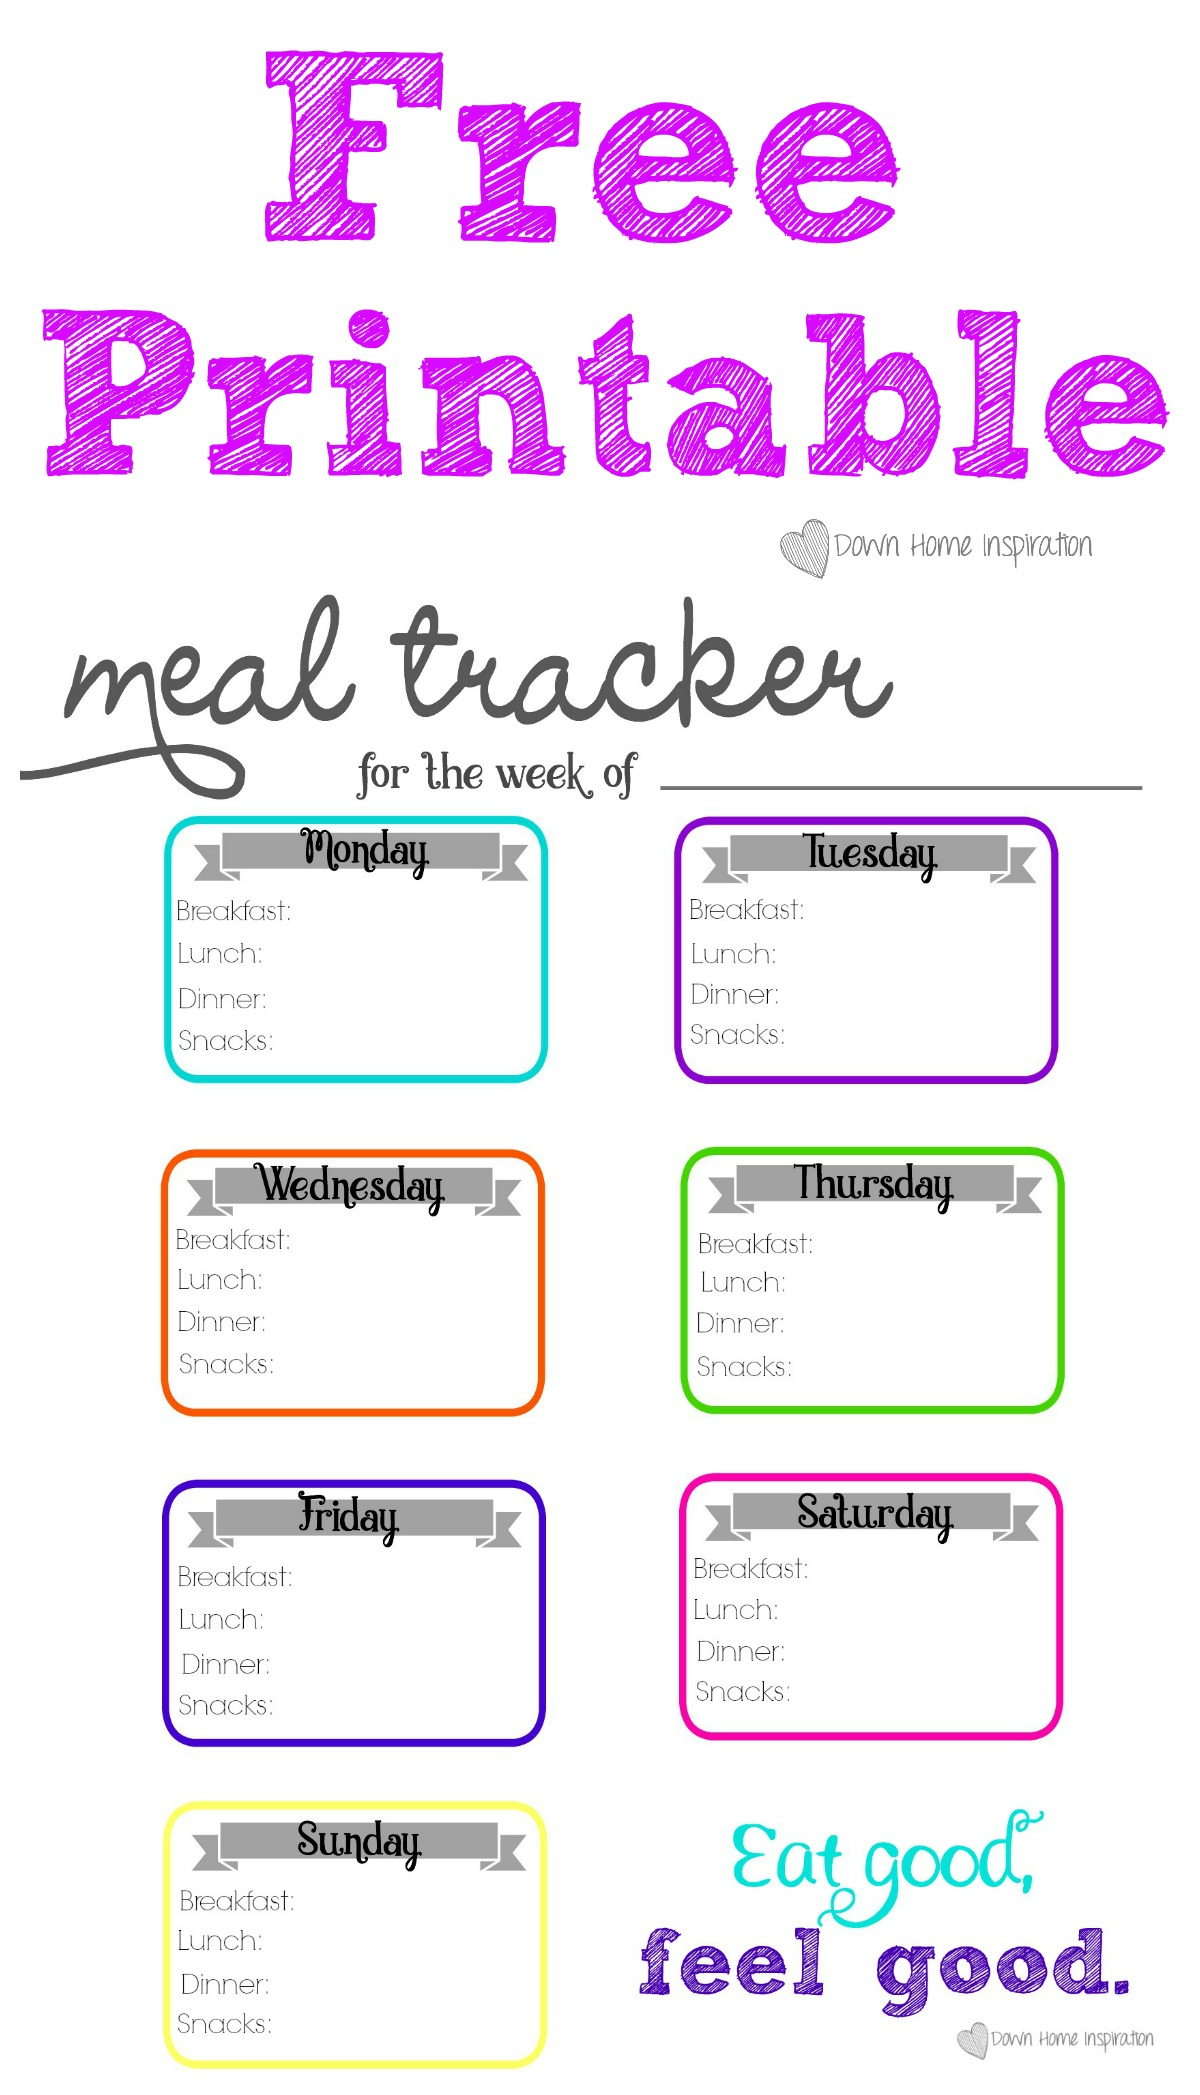 photo relating to Meal Tracker Printable called Totally free Printable Evening meal Tracker - Down Dwelling Commitment